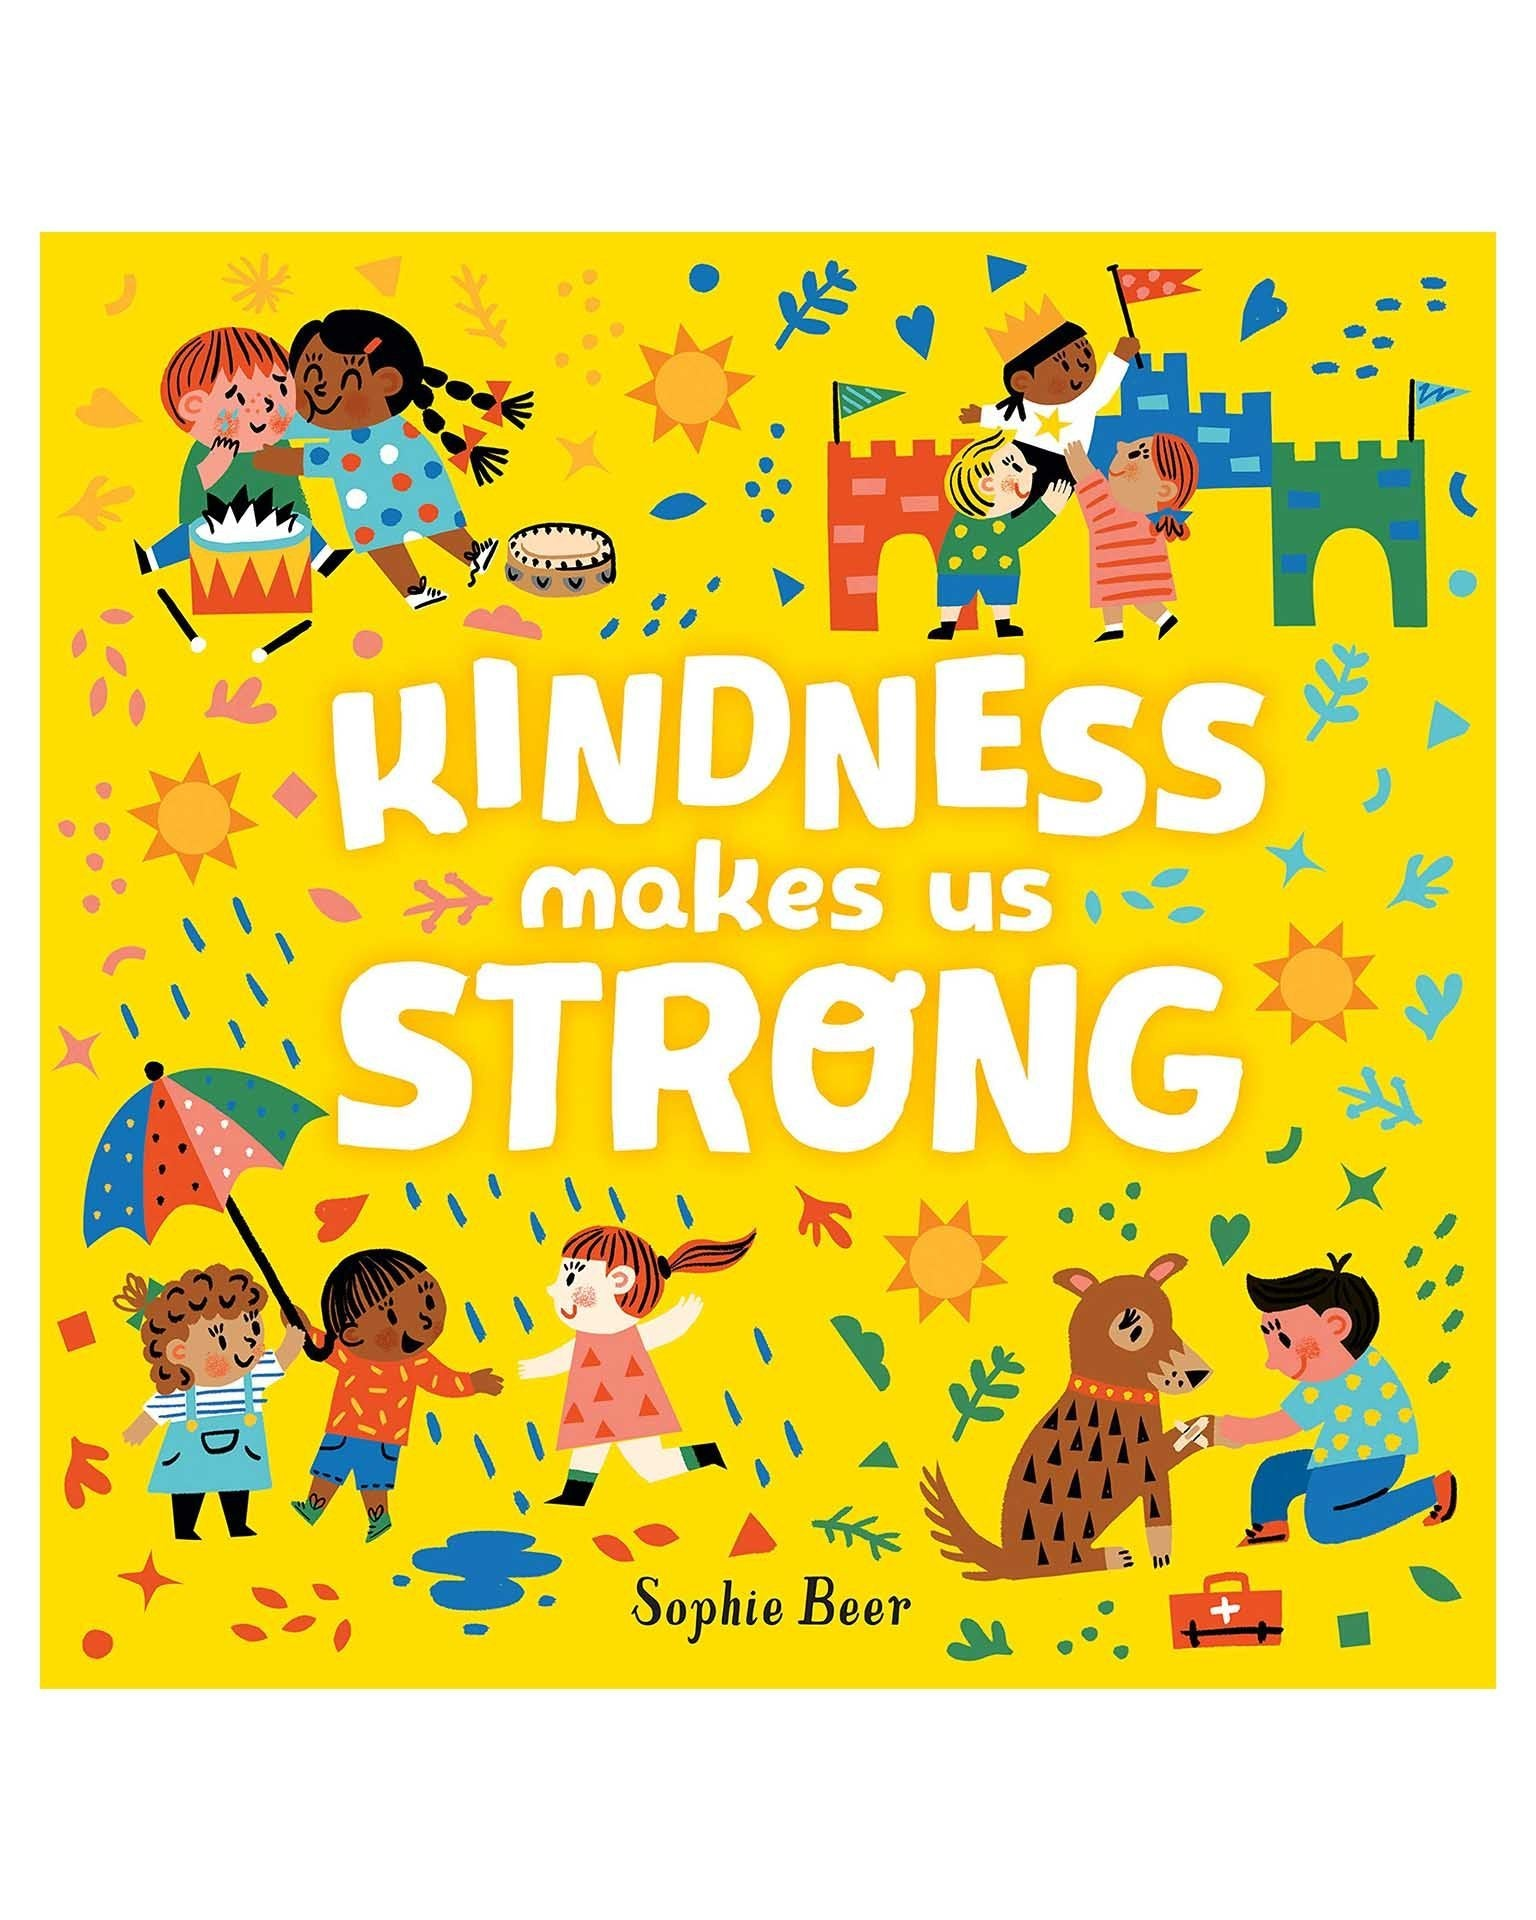 Little penguin group play kindness makes us strong